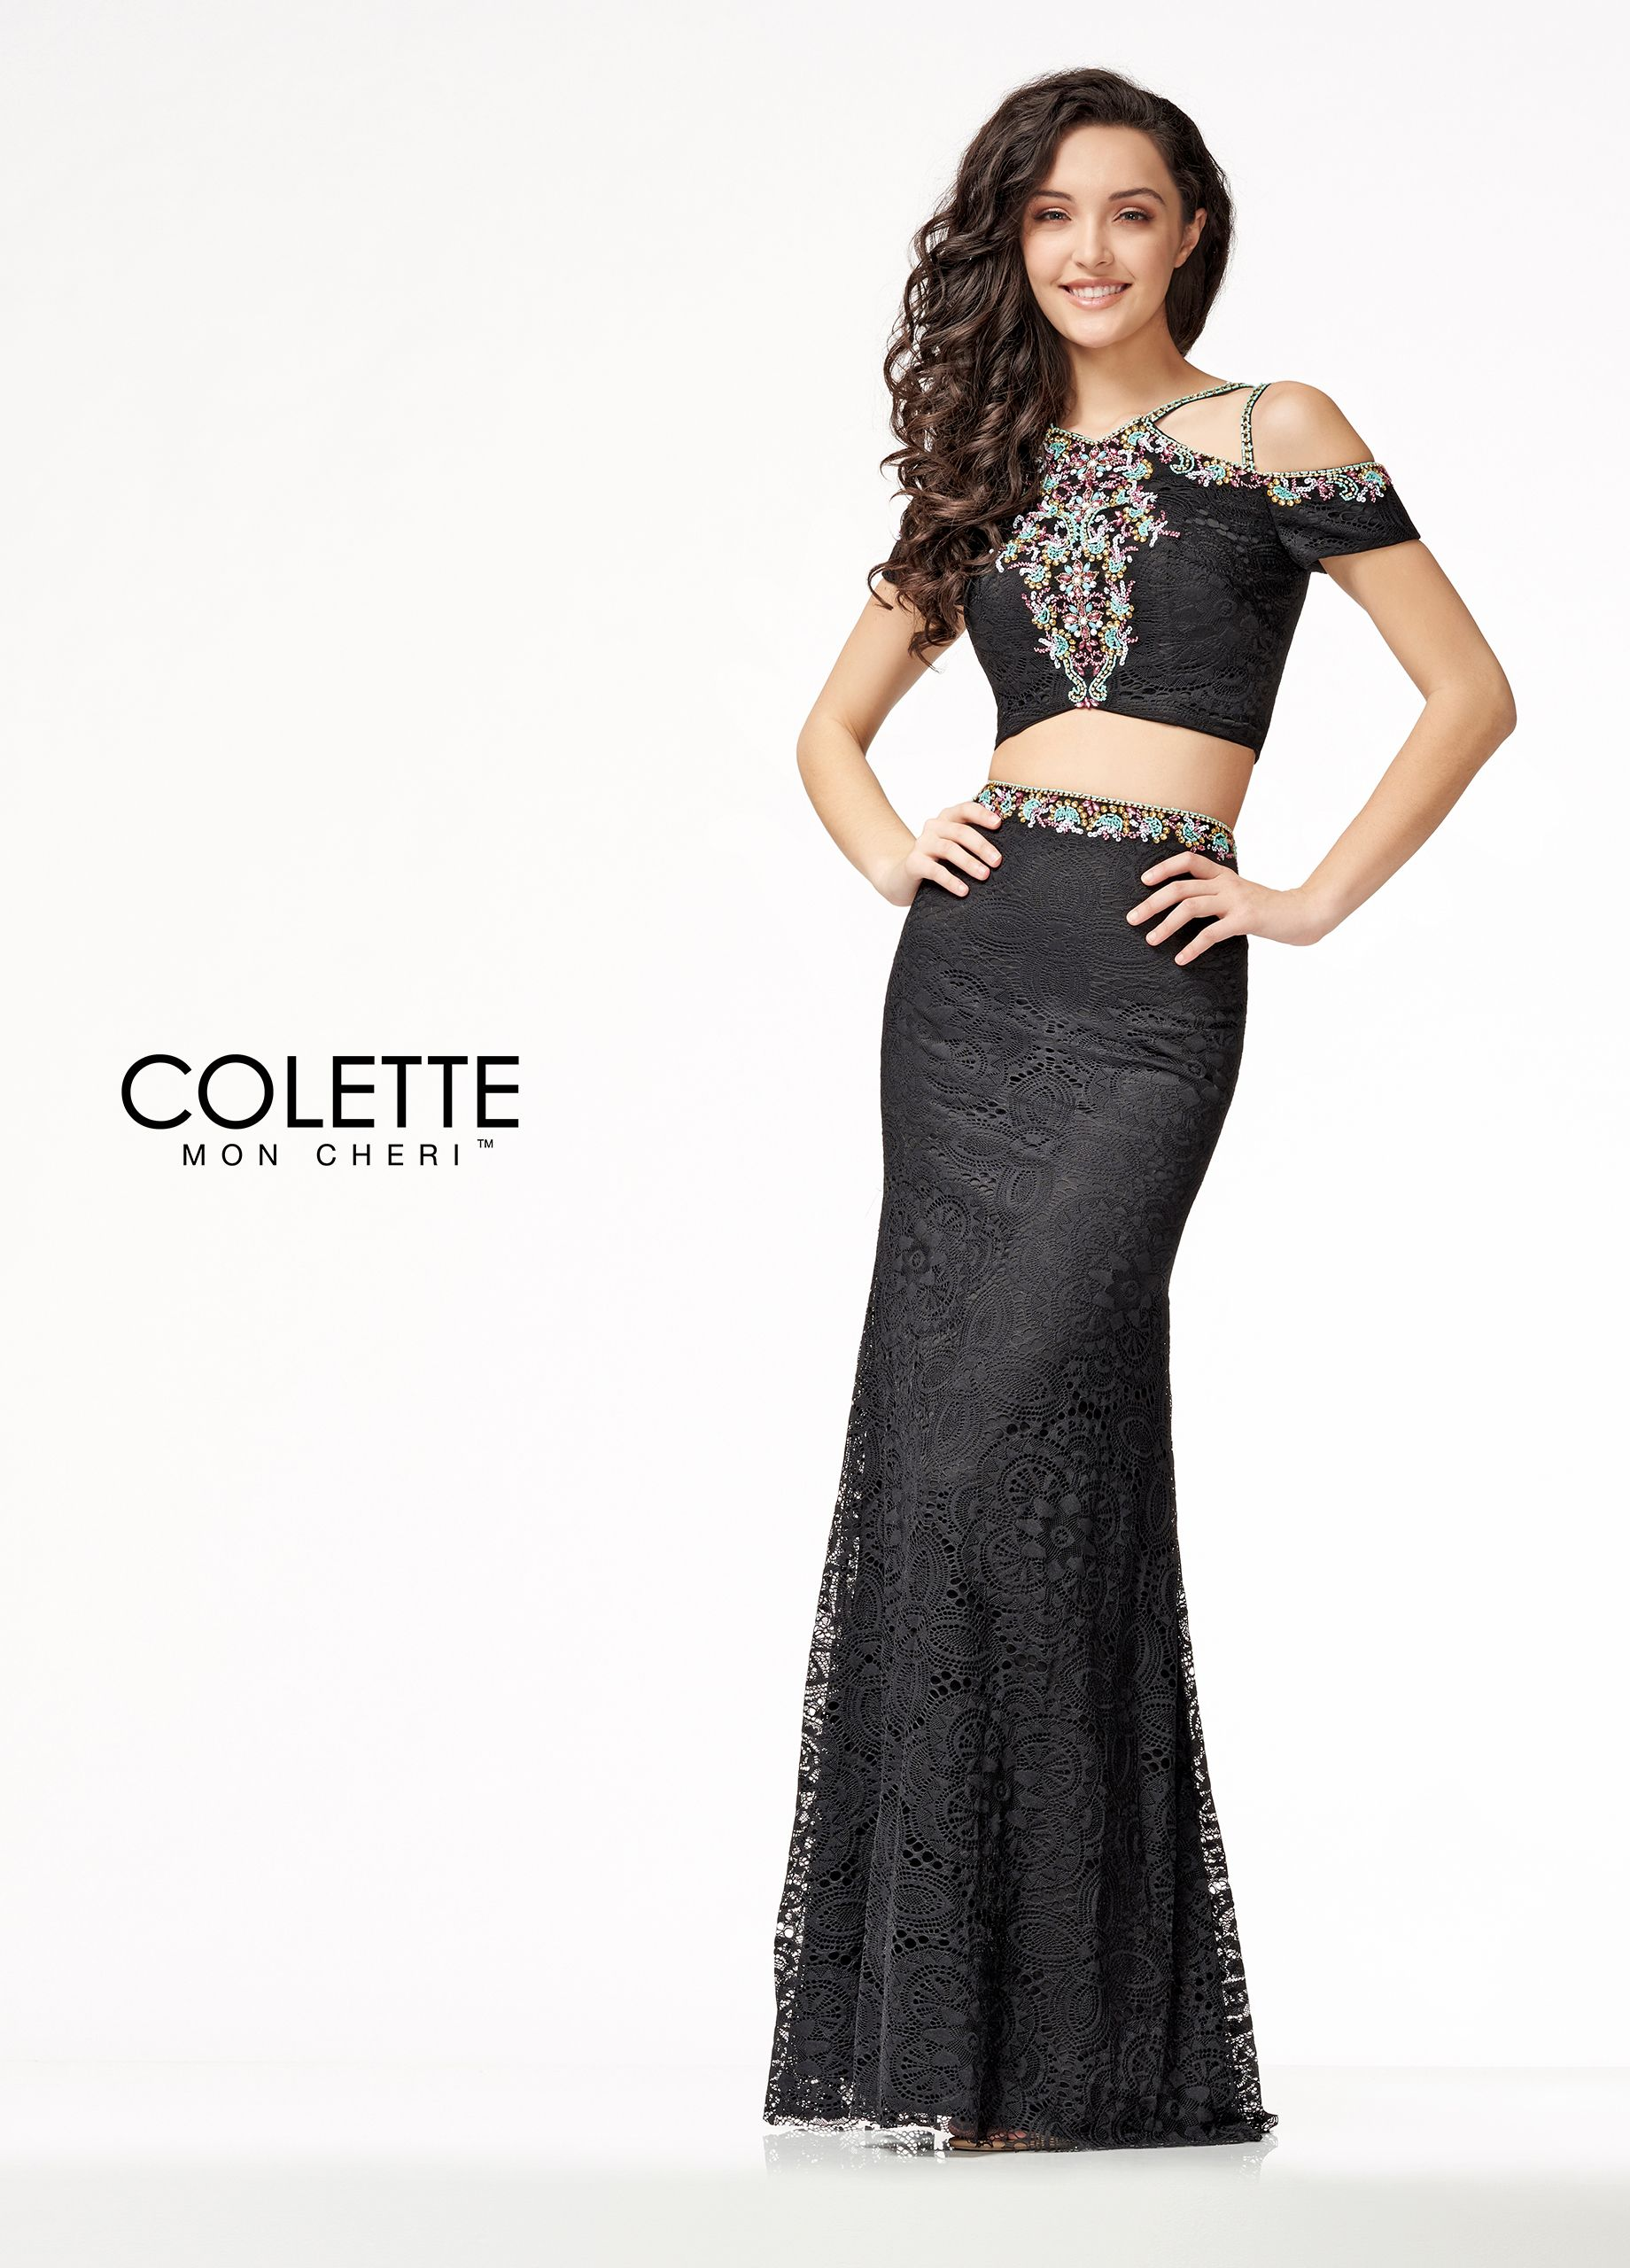 8739833a8304 Colette for Mon Cheri CL18207 - Give them the cold shoulder with this sexy  boho chic two-piece prom dress! This all over modern lace dress features  trendy ...